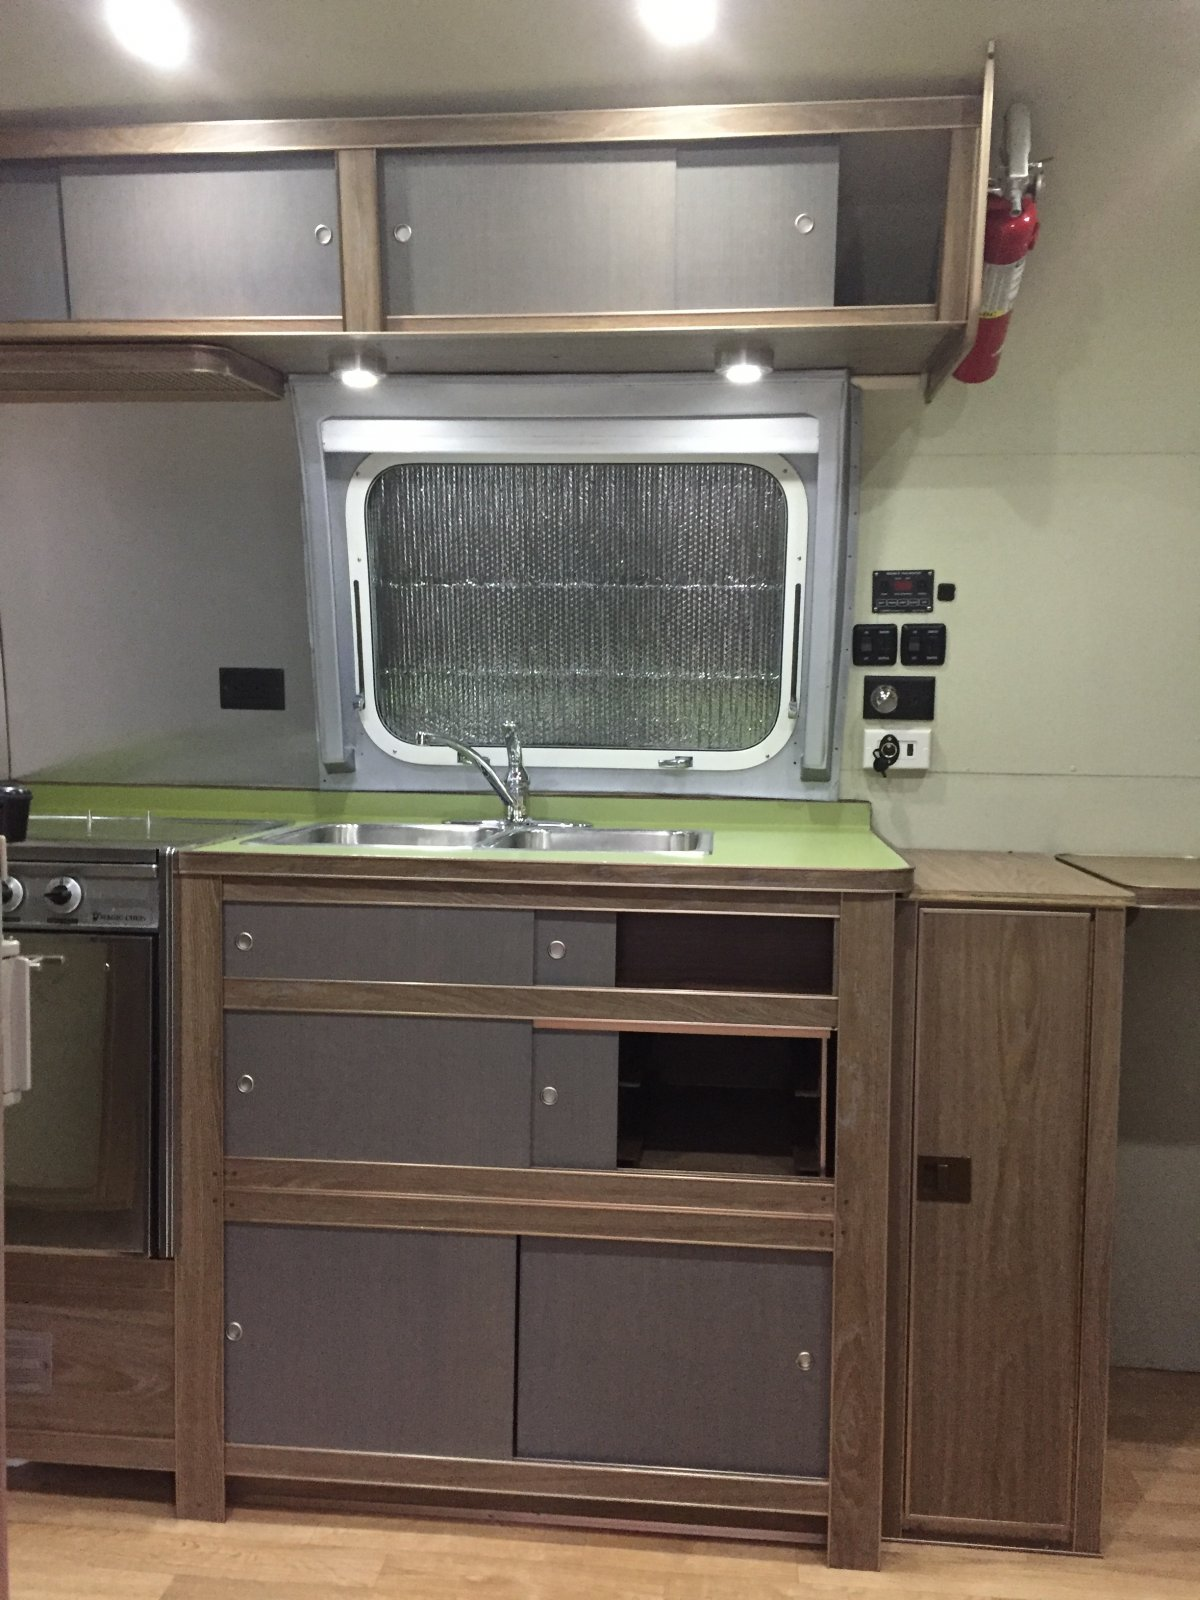 Click image for larger version  Name:Kitchen Cab.jpg Views:160 Size:275.2 KB ID:282117